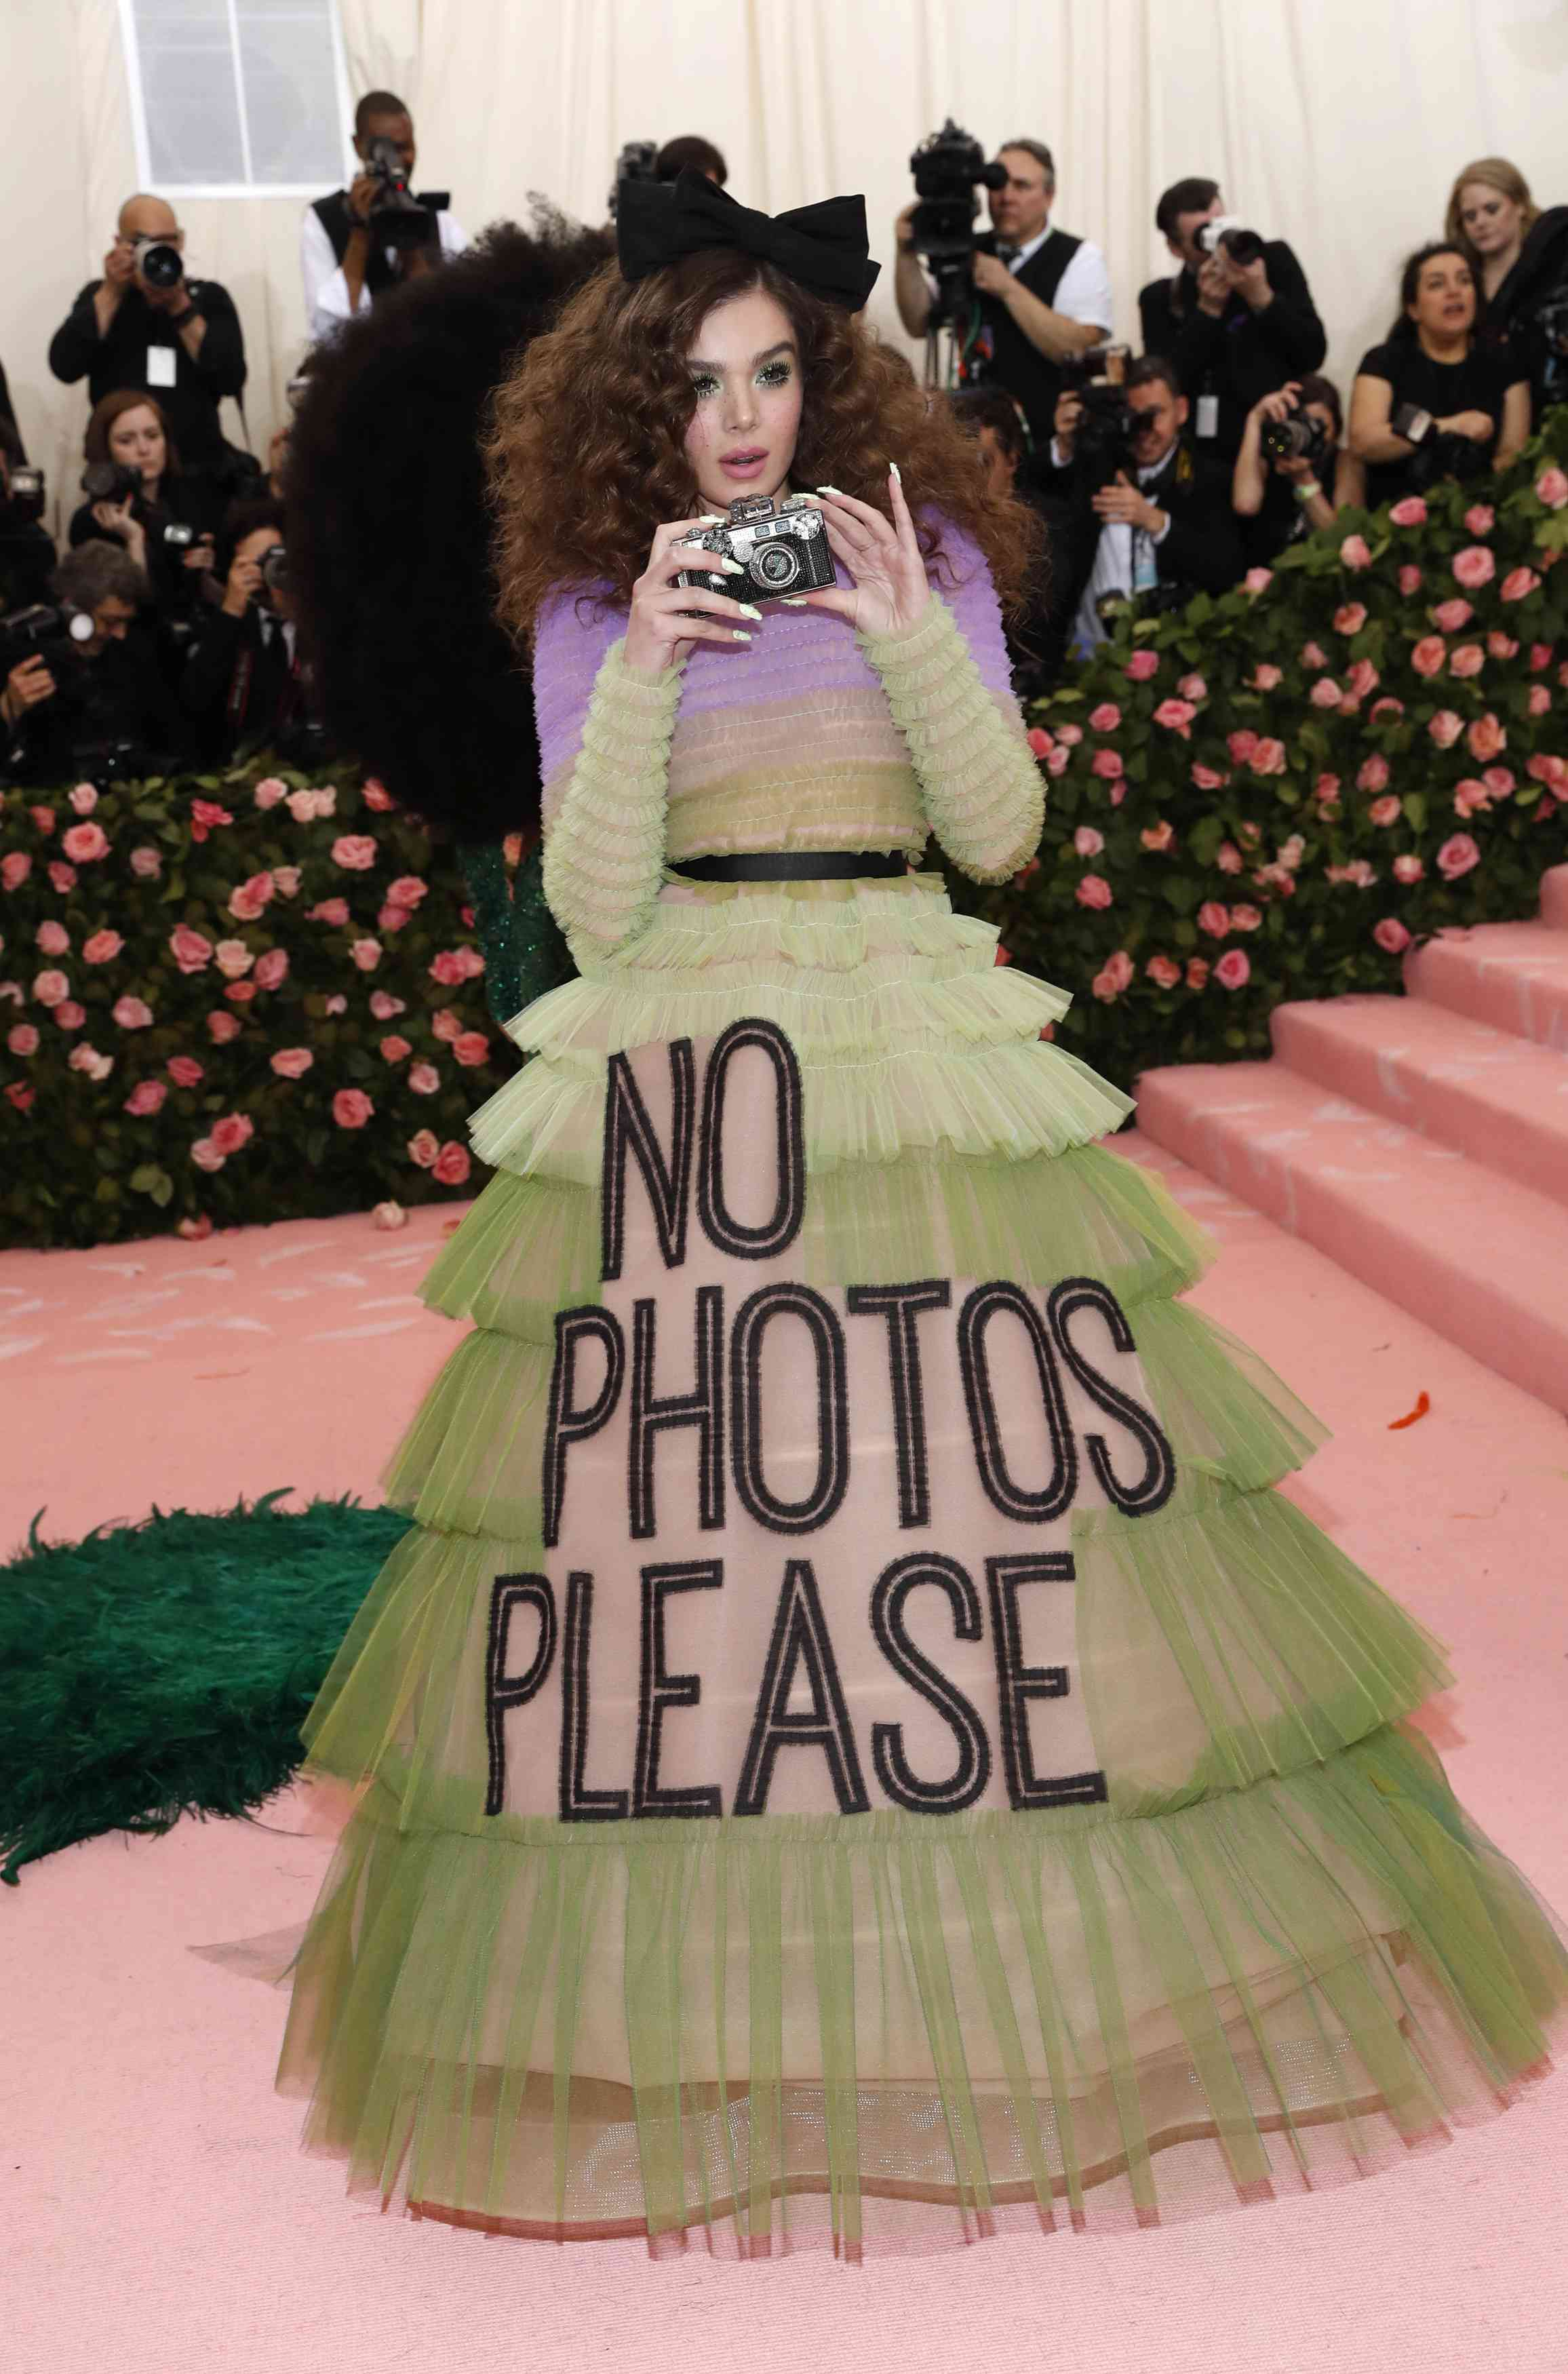 Hailee Steinfeld at the Met Gala 2019 | Image credit: Andrew Kelly / Reuters